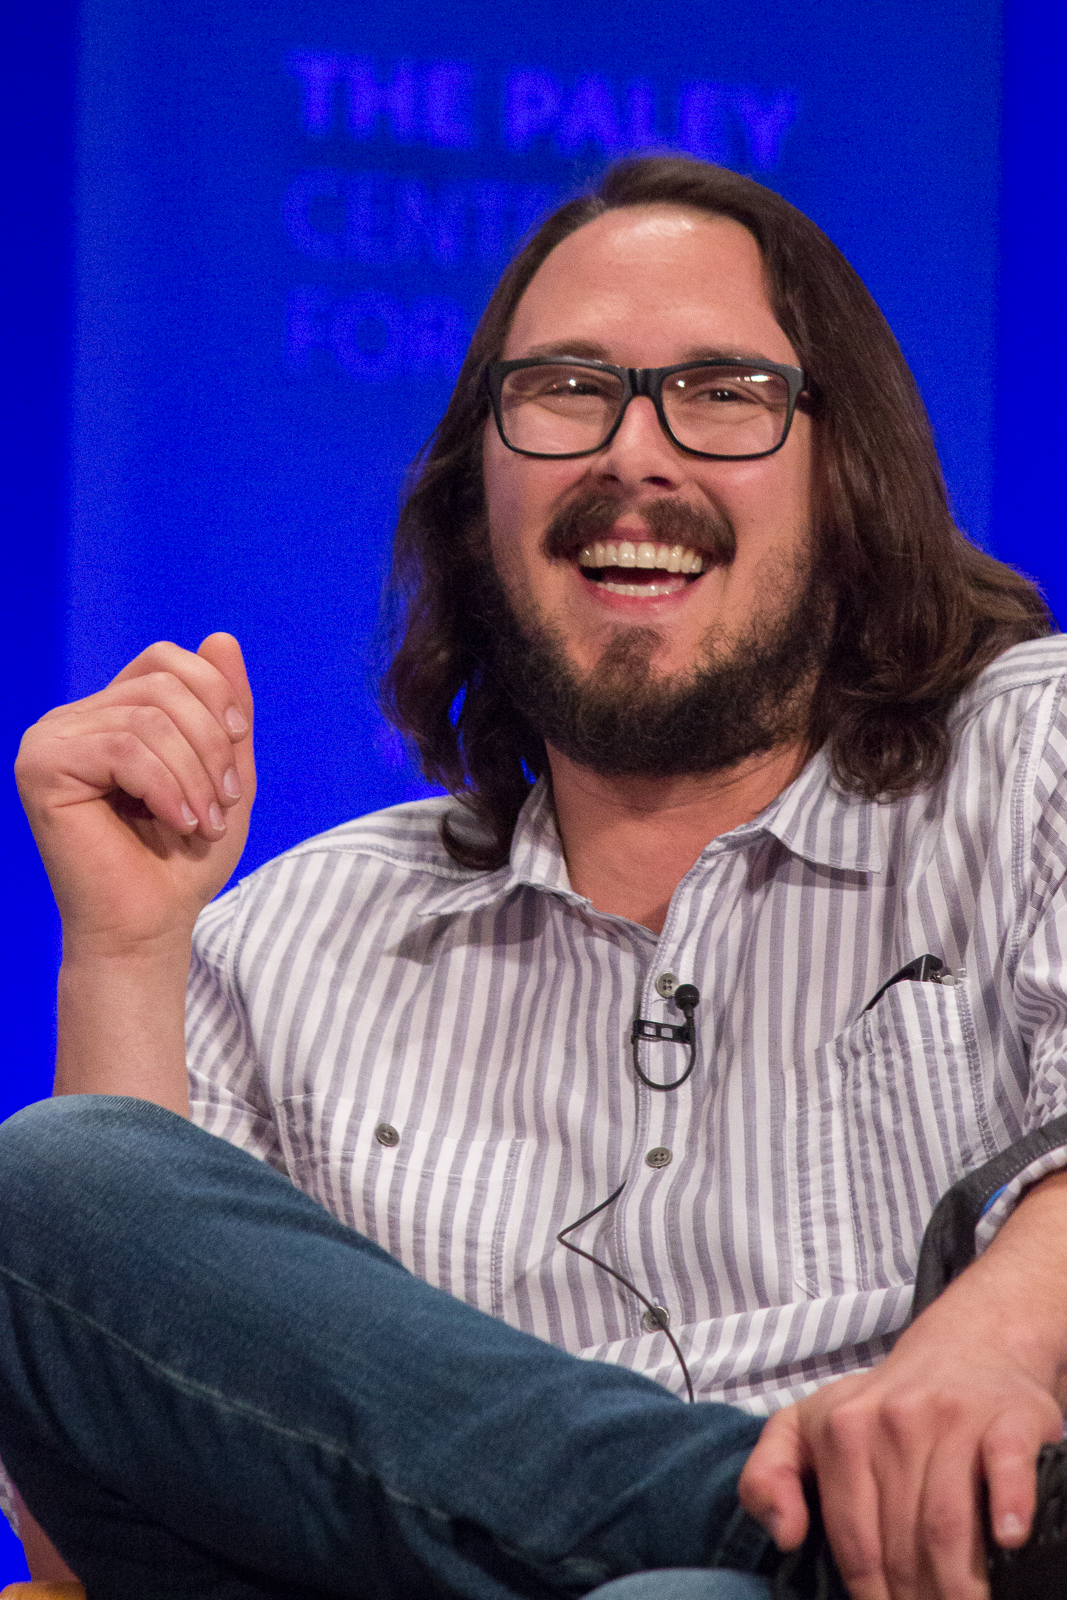 kyle newacheck heightkyle newacheck band, kyle newacheck, kyle newacheck net worth, kyle newacheck instagram, kyle newacheck tacos and drugs, kyle newacheck welcome to my world, kyle newacheck catfish, kyle newacheck wife, kyle newacheck tattoo, kyle newacheck eye, kyle newacheck girlfriend marissa, kyle newacheck height, kyle newacheck wedding, kyle newacheck imdb, kyle newacheck music, kyle newacheck parks and rec, kyle newacheck interview, kyle newacheck workaholics, kyle newacheck married, kyle newacheck community